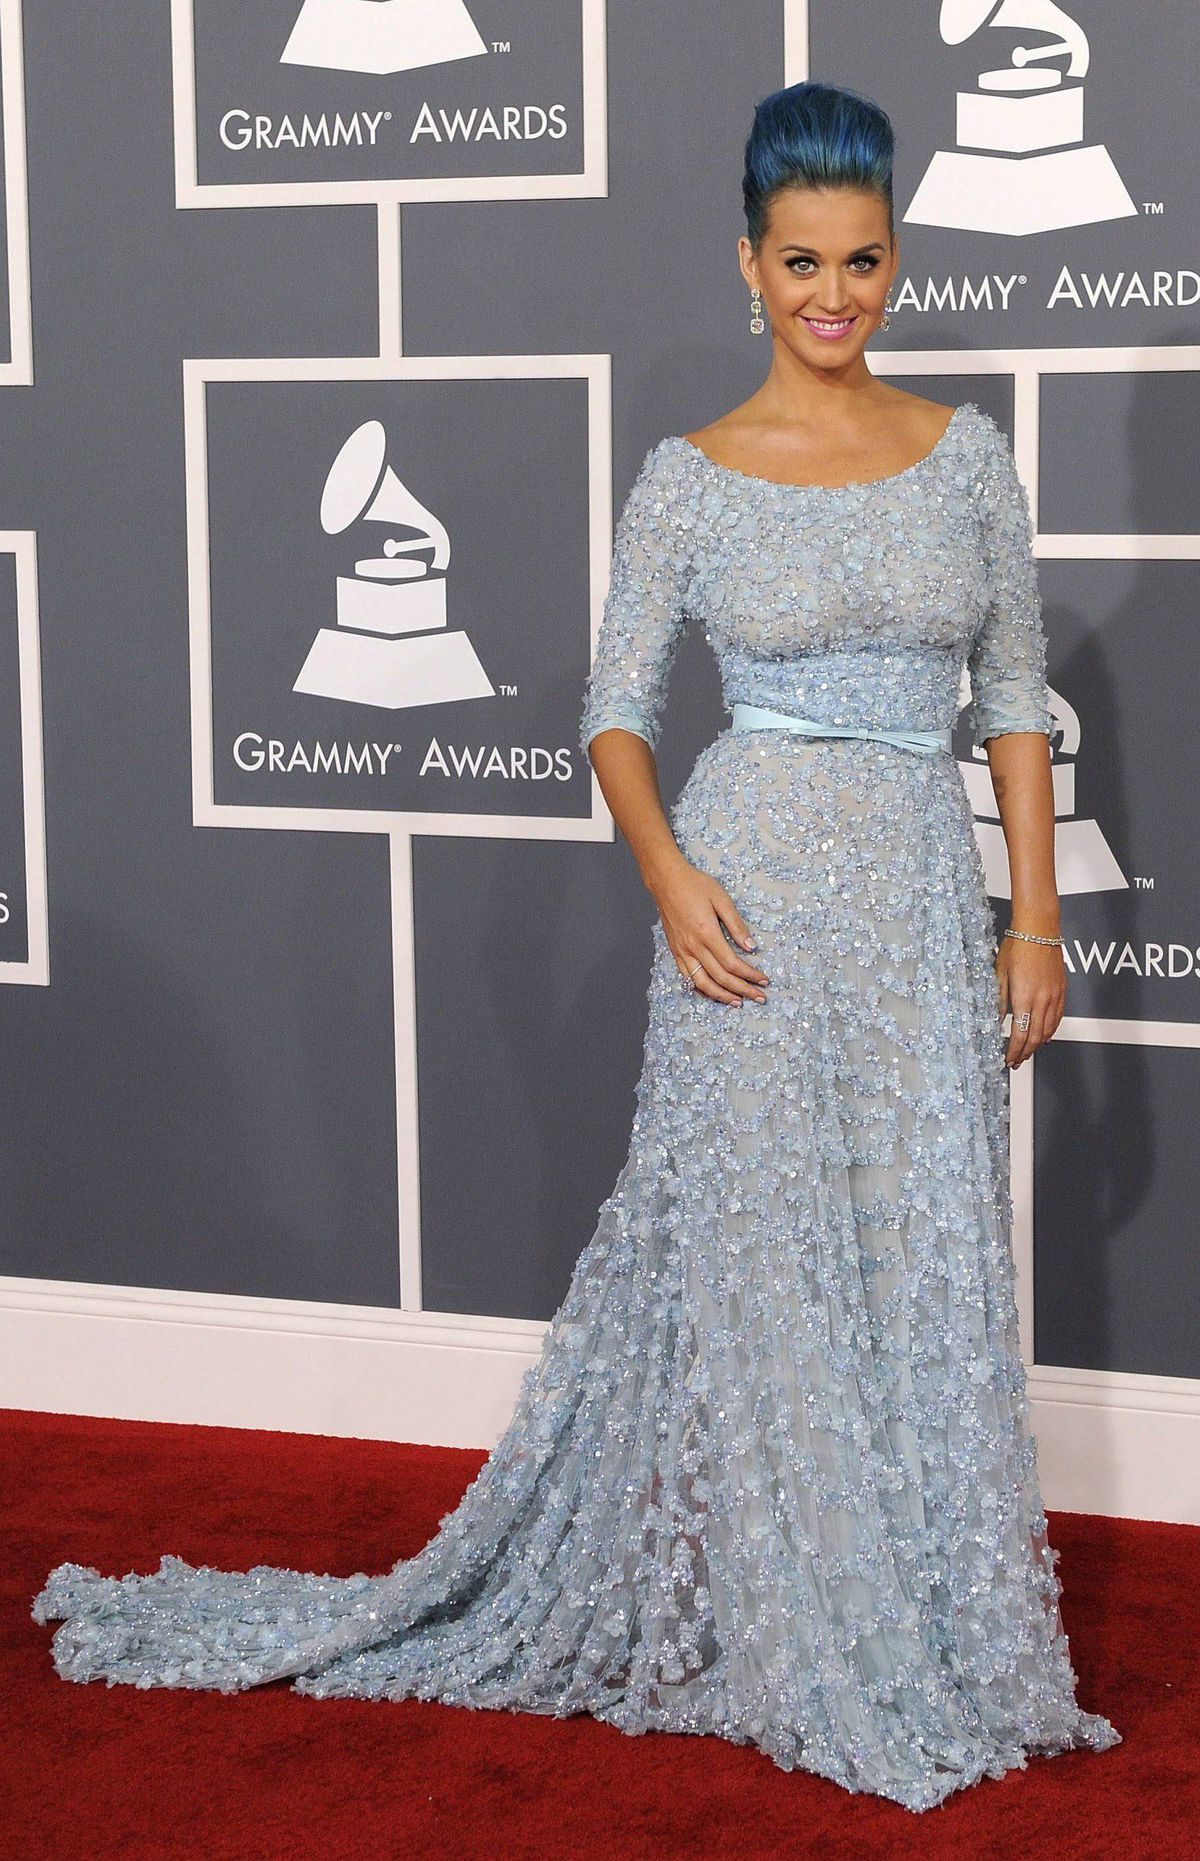 Katy Perry arrives at the 54th annual Grammy Awards on Sunday, Feb. 12, 2012 in Los Angeles.